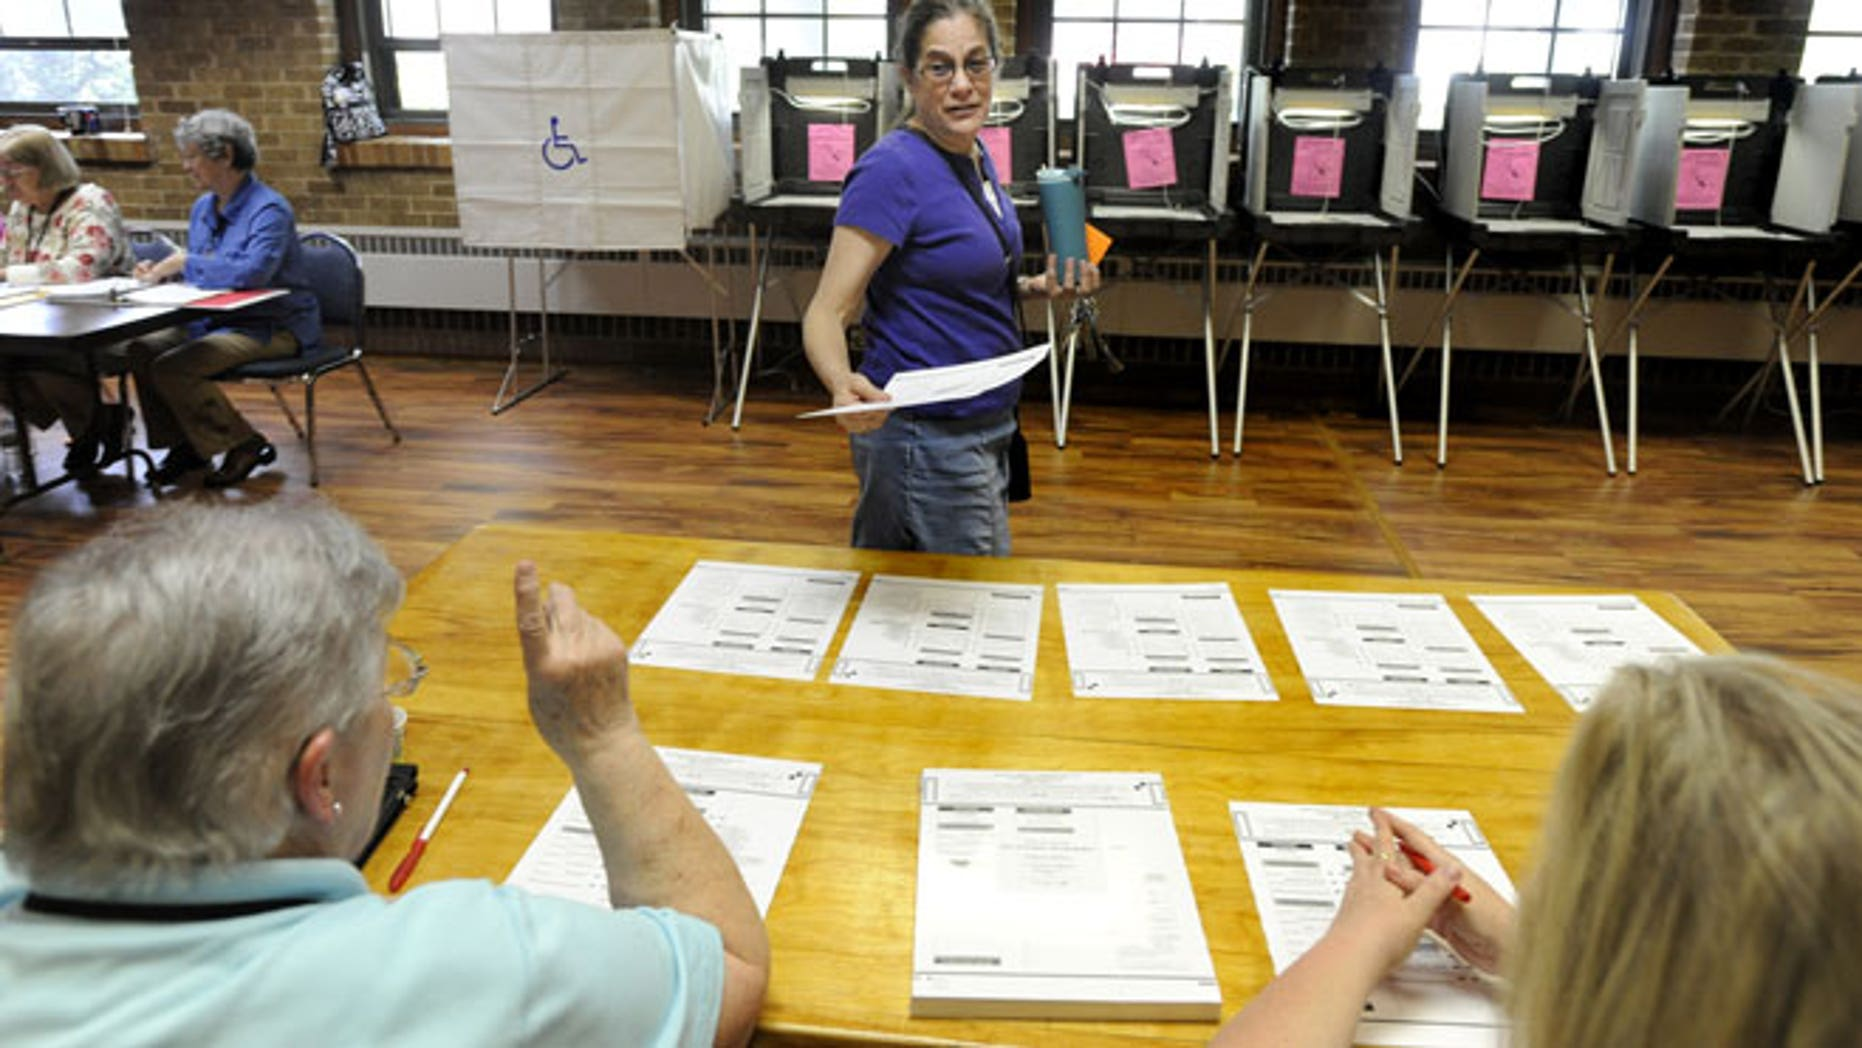 May 8, 2012: Ruth Hoover talks with poll volunteer workers Fay Tichy, left, and Jacki Helgerson, right, after receiving her ballot from them prior to voting in the Wisconsin recall primary election in the Union Grove Municipal building in Union Grove, Wis.